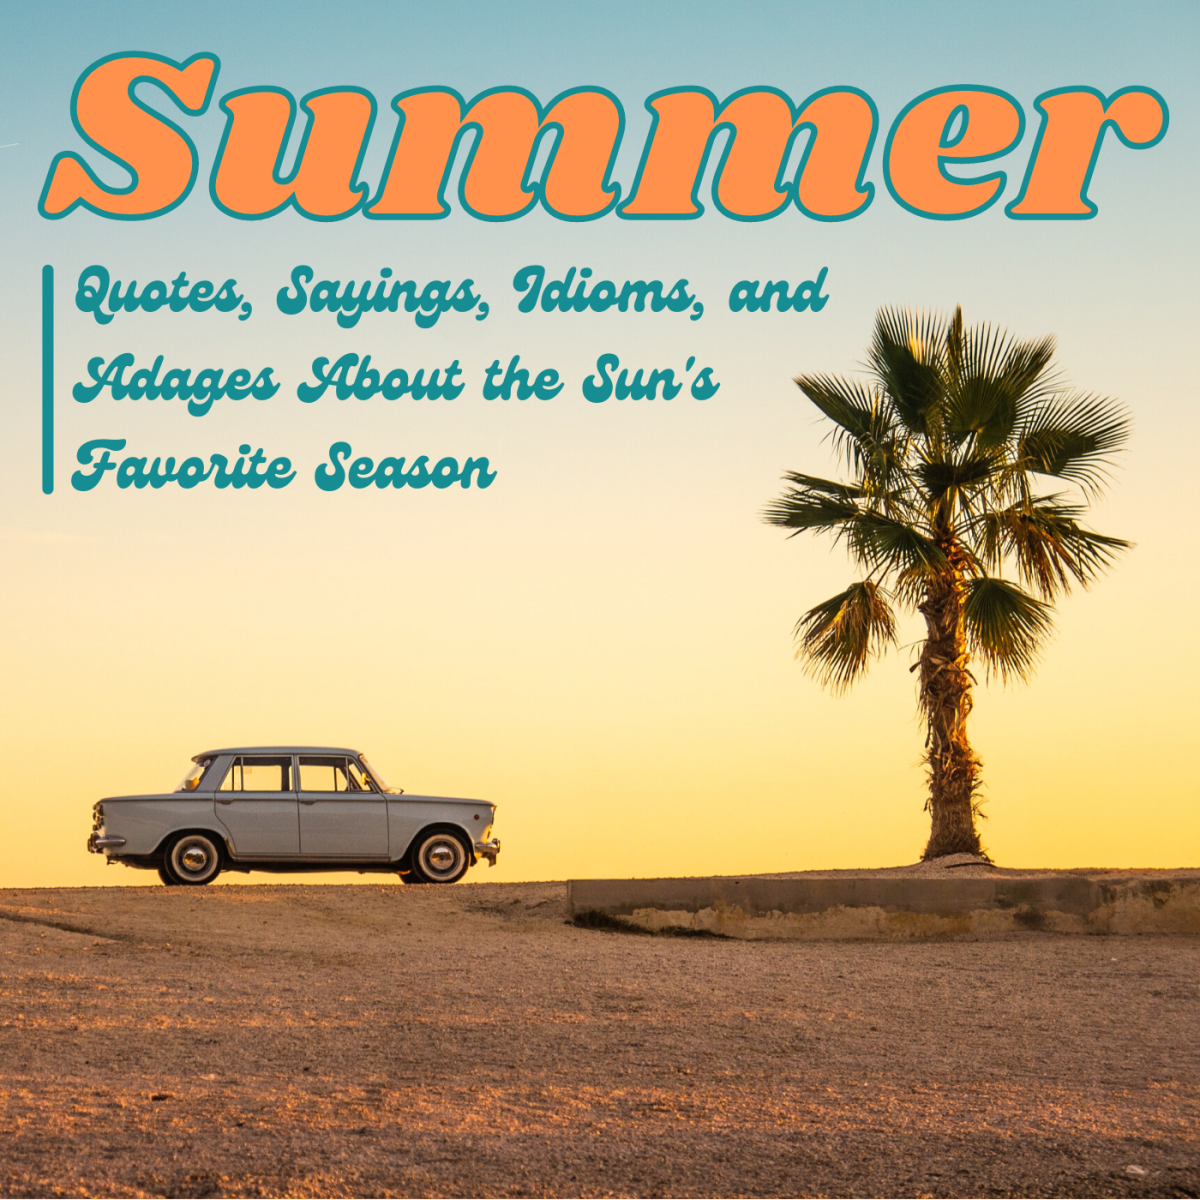 Our language is full of phrasal oddities and bits of arcane, seasonal wisdom about summer and its lot.